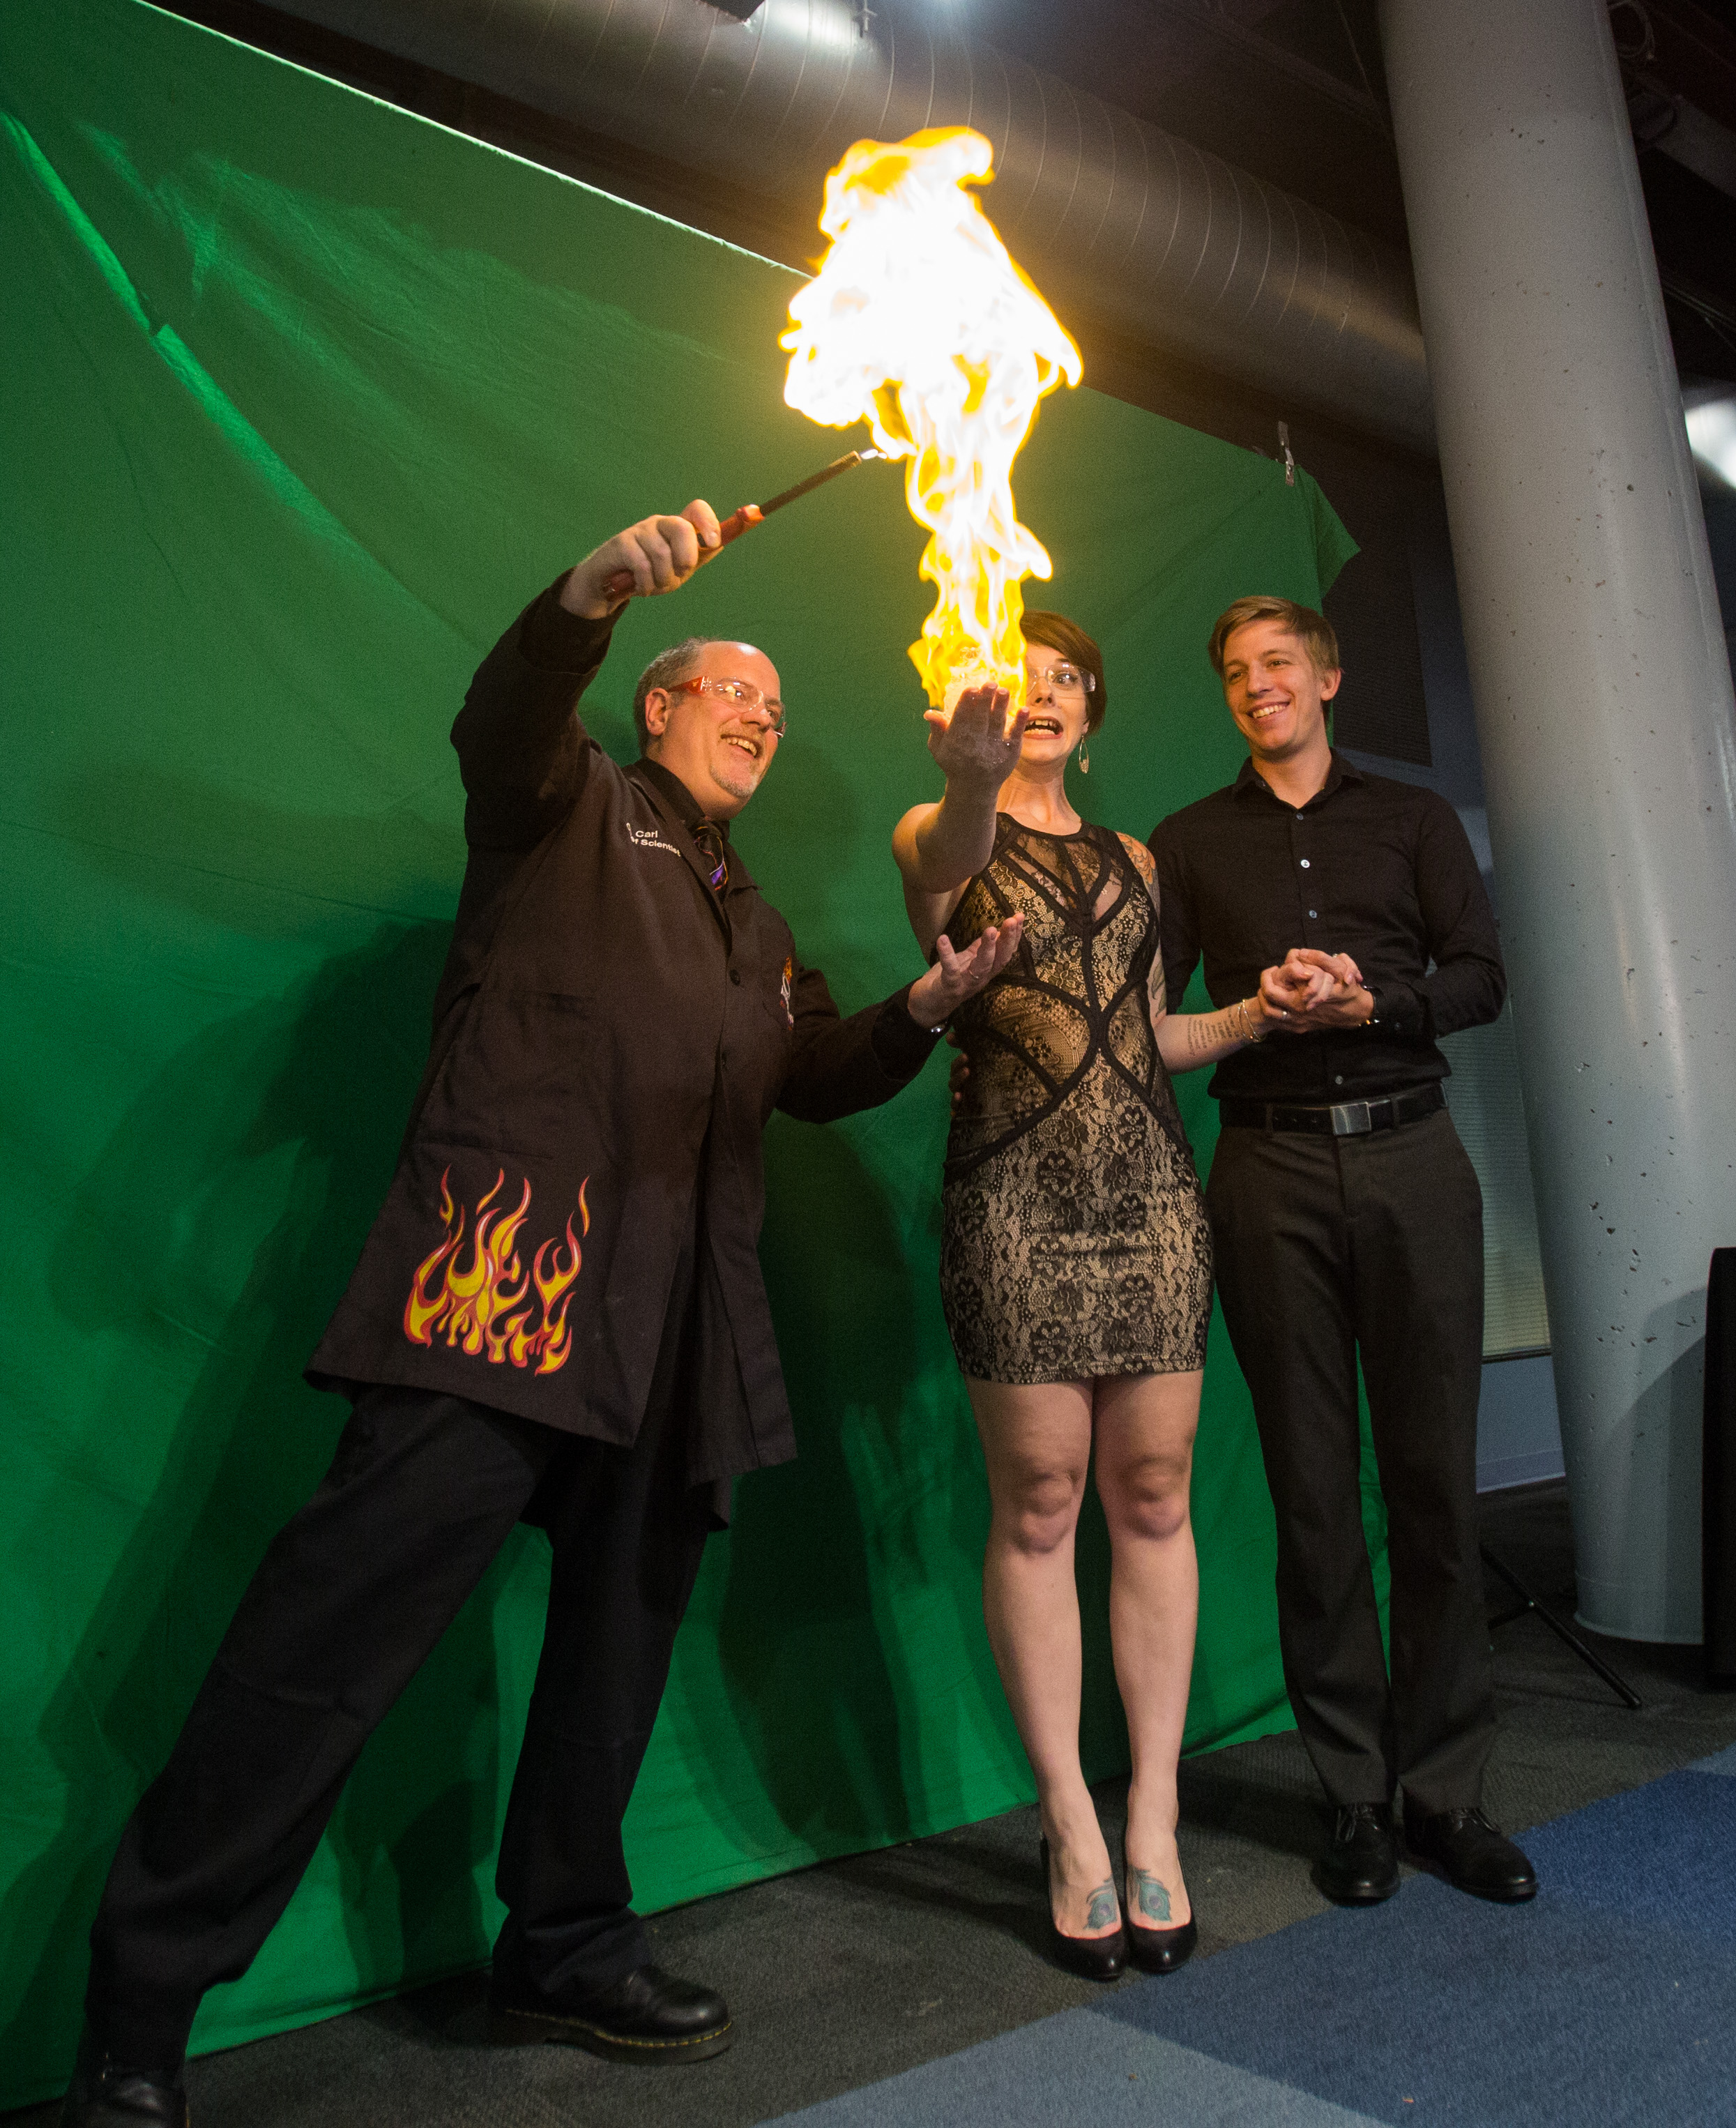 Imagination Station chief scientist Carl Nelson lights the methane filled bubbles in Bri Gibson's hand to take a photo with Ben Gibson during the Bash 7 fundraiser at Imagination Station in downtown Toledo on Saturday, Sept. 17, 2016.